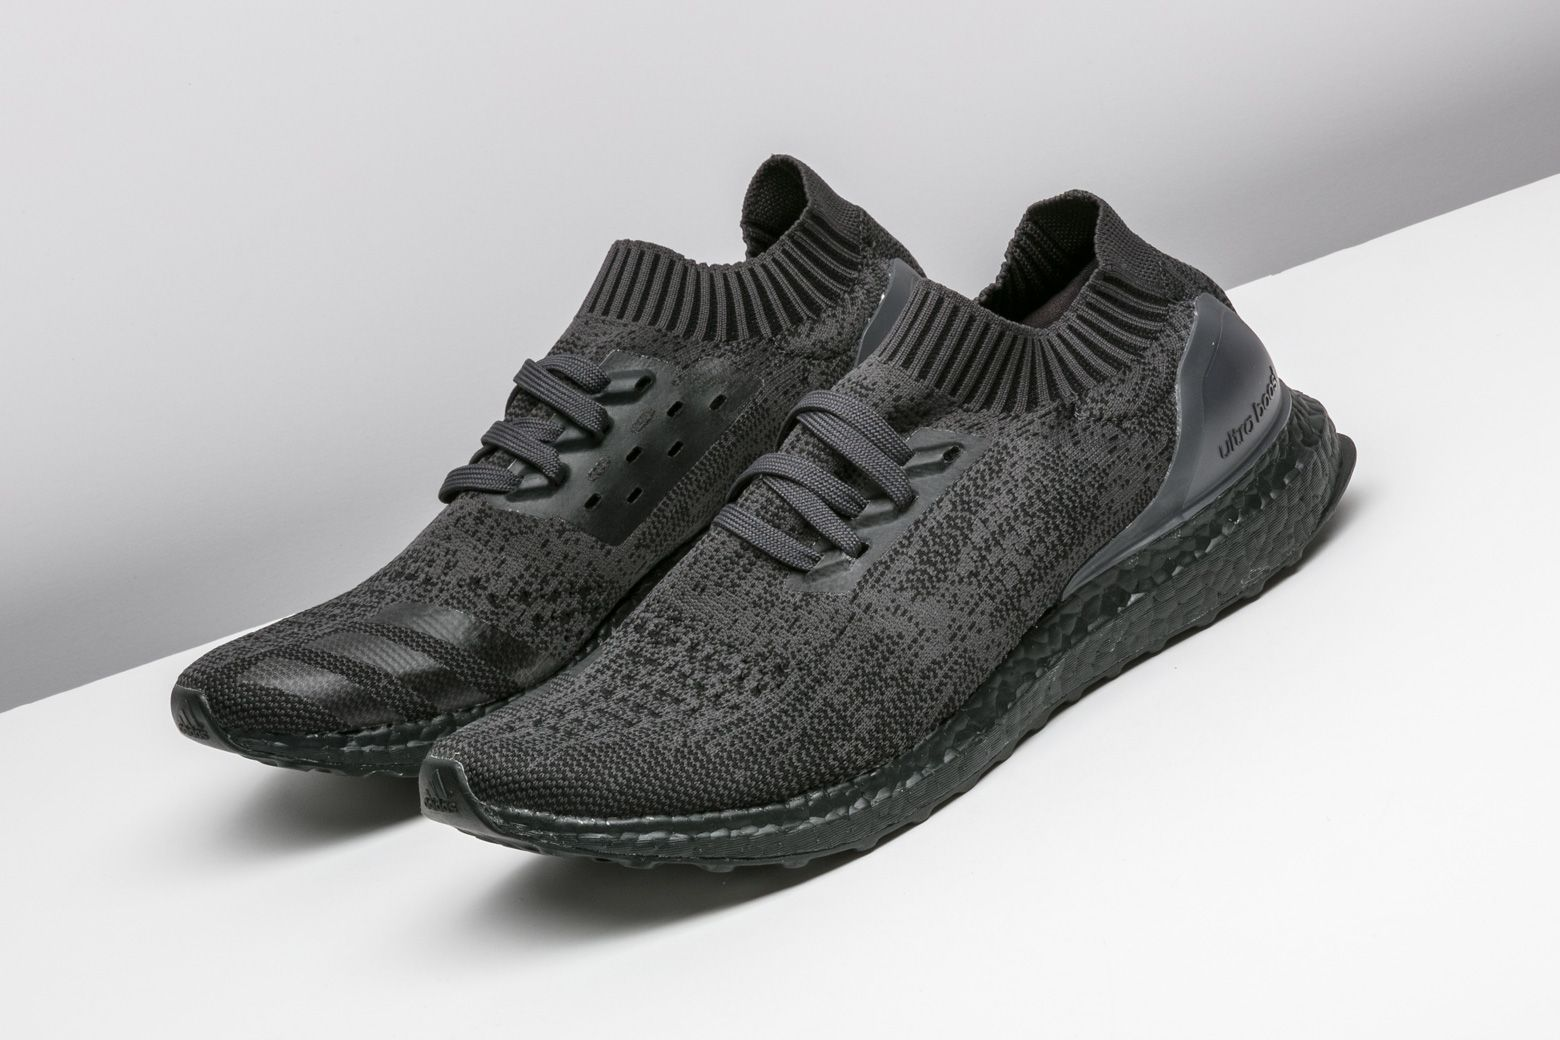 quality design 775c4 f8958 The adidas Ultra Boost Uncaged in